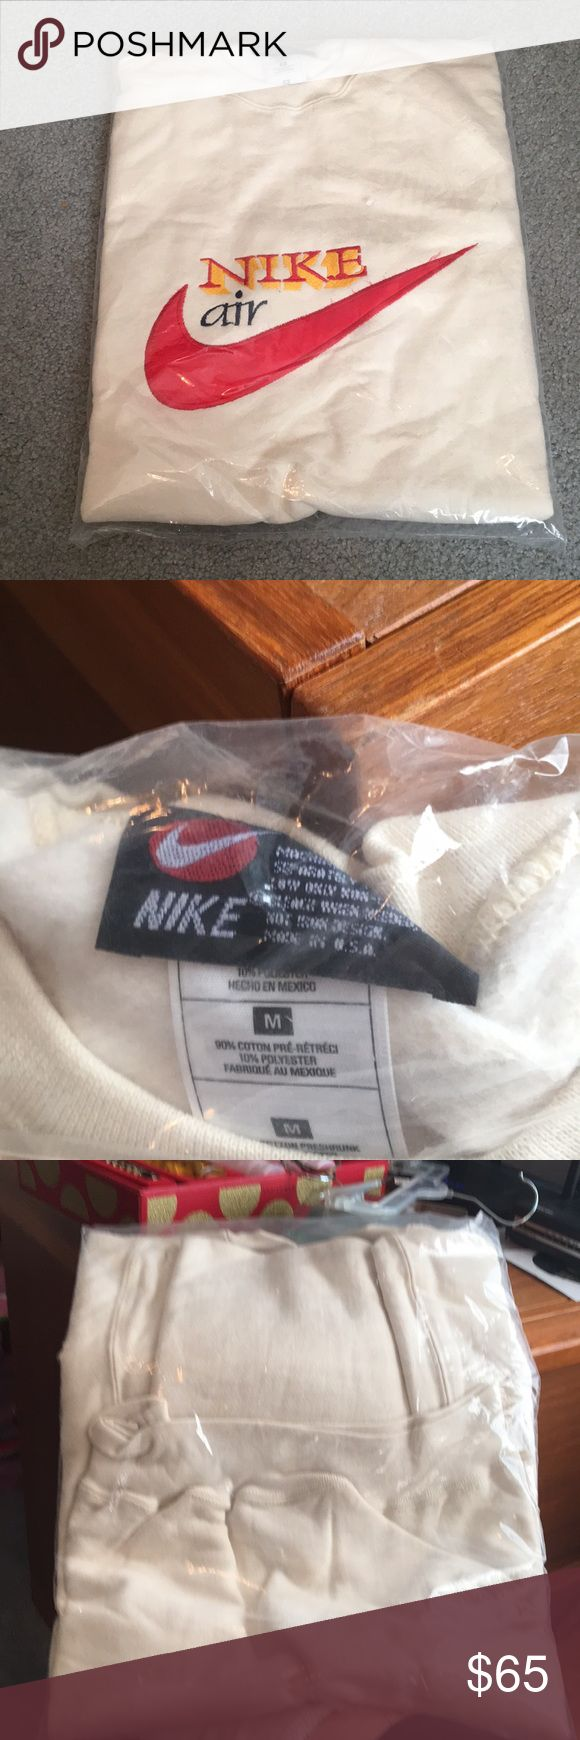 NWOT Nike air sweatshirt men's Medium This sweatshirt is in its original package. Never opened. I left the package closed so no photos of the entire things. nike air Jackets & Coats